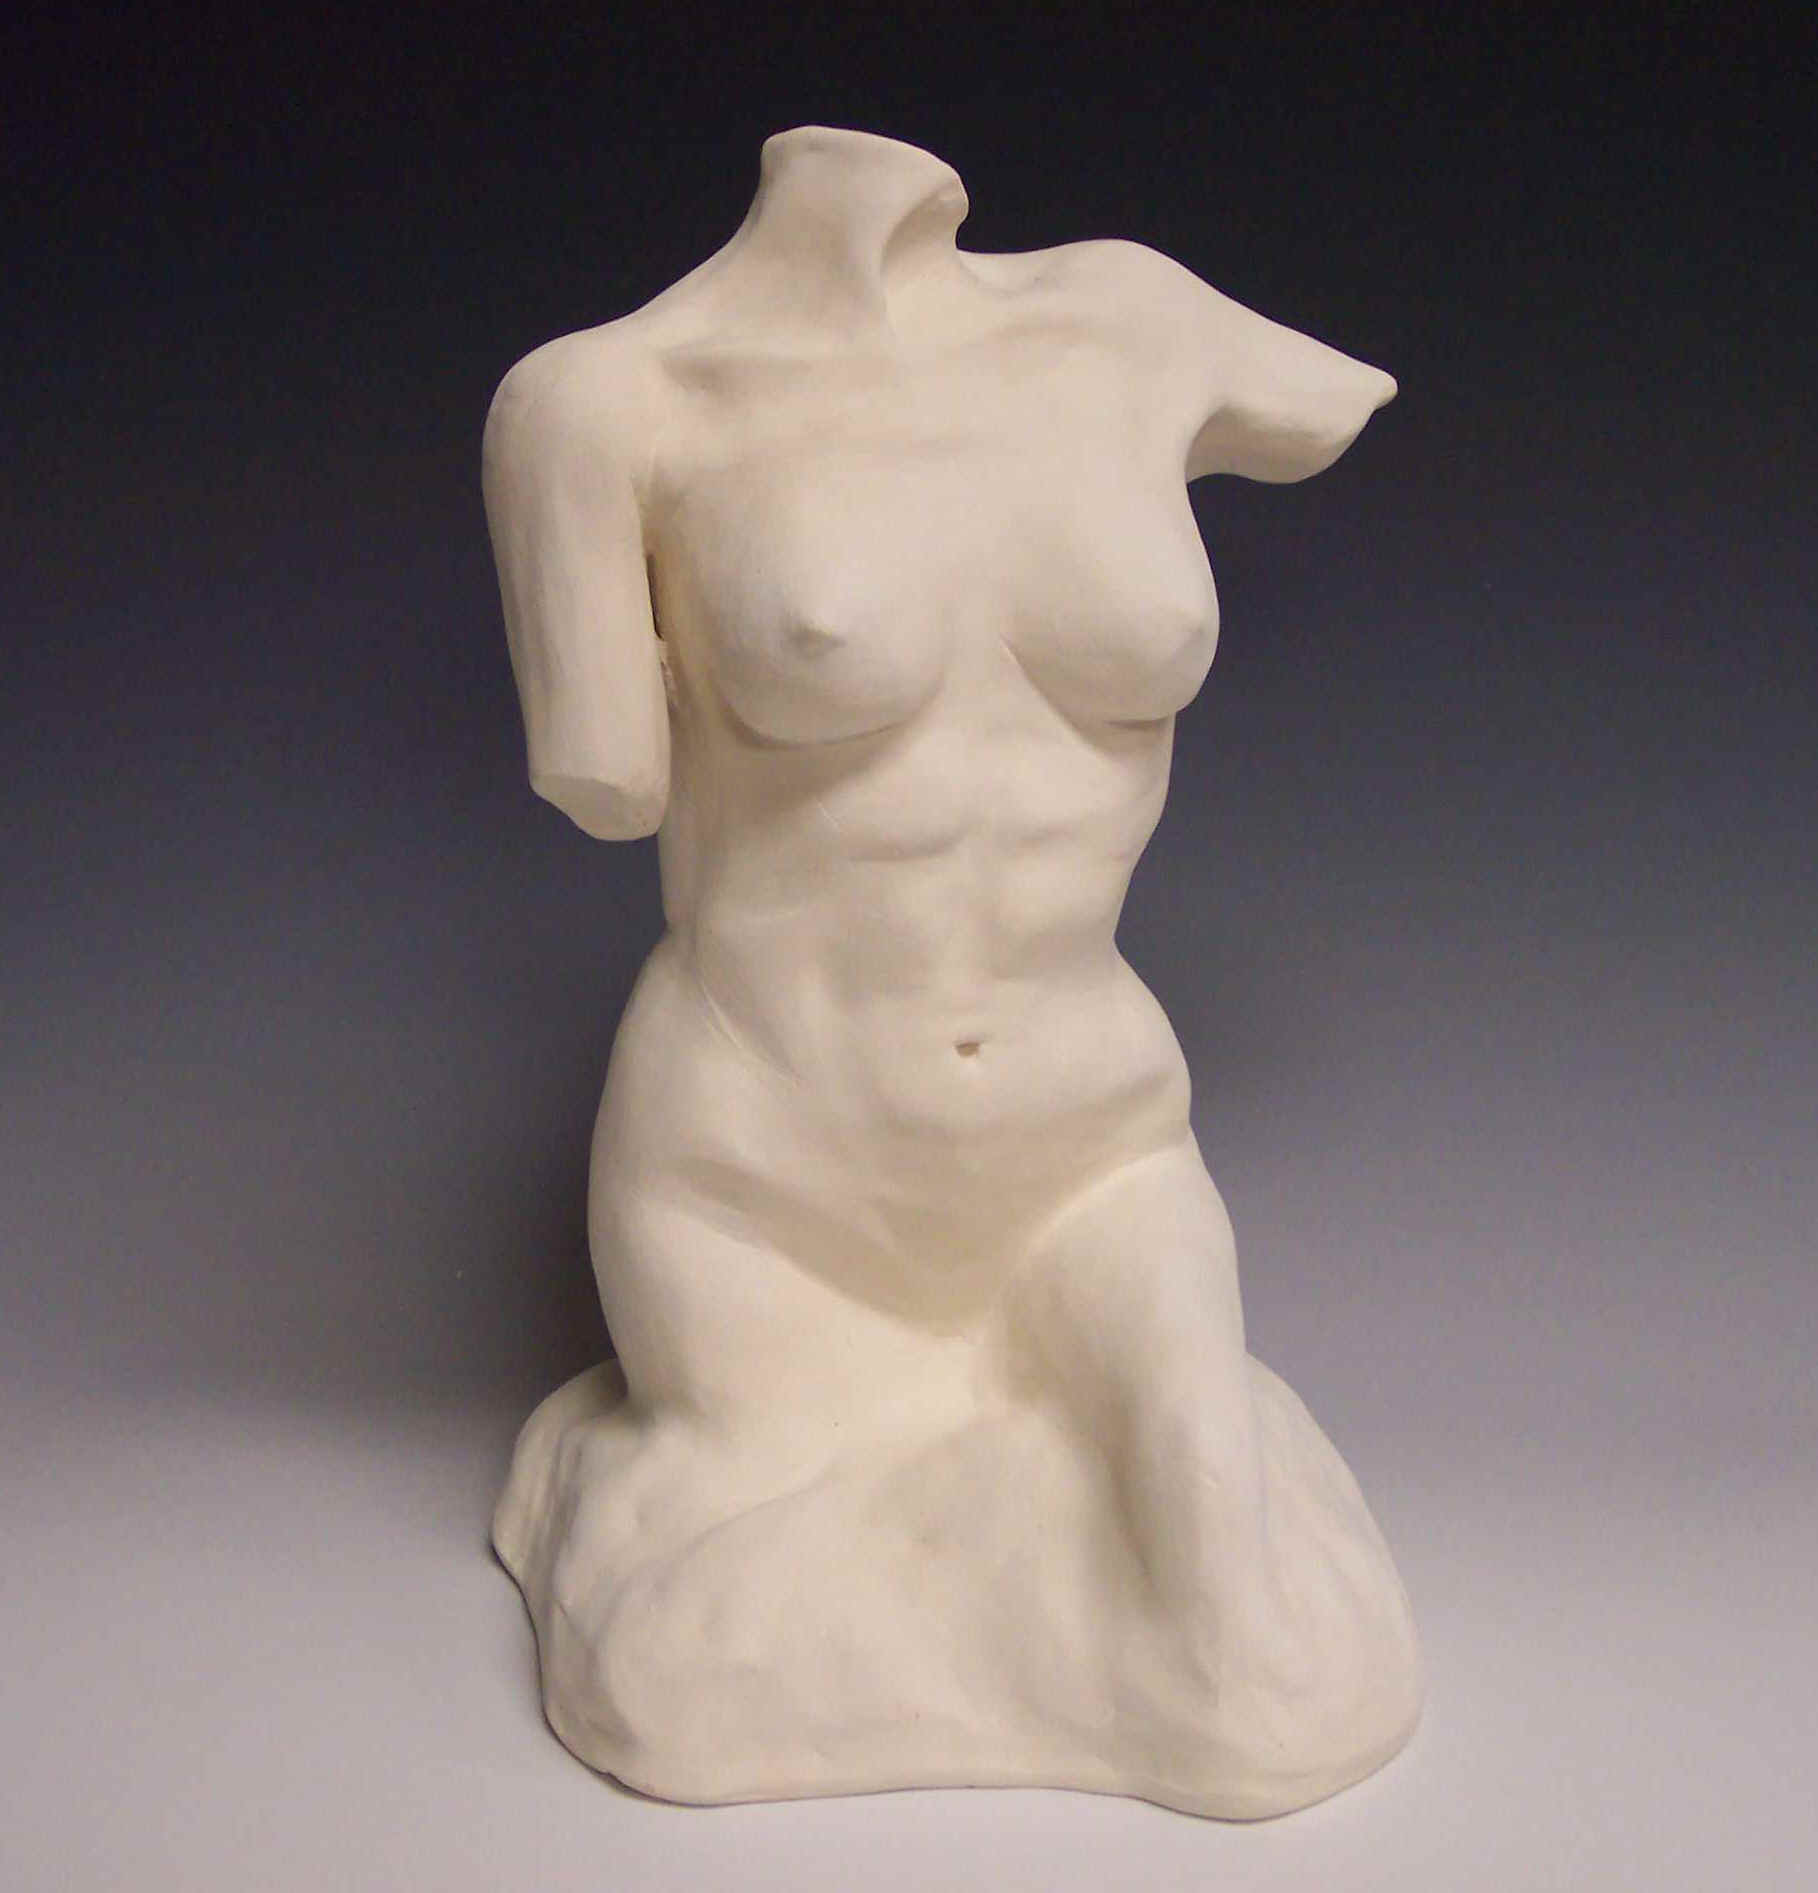 Female Torso Sculpture FemaleTorso Artist Collection